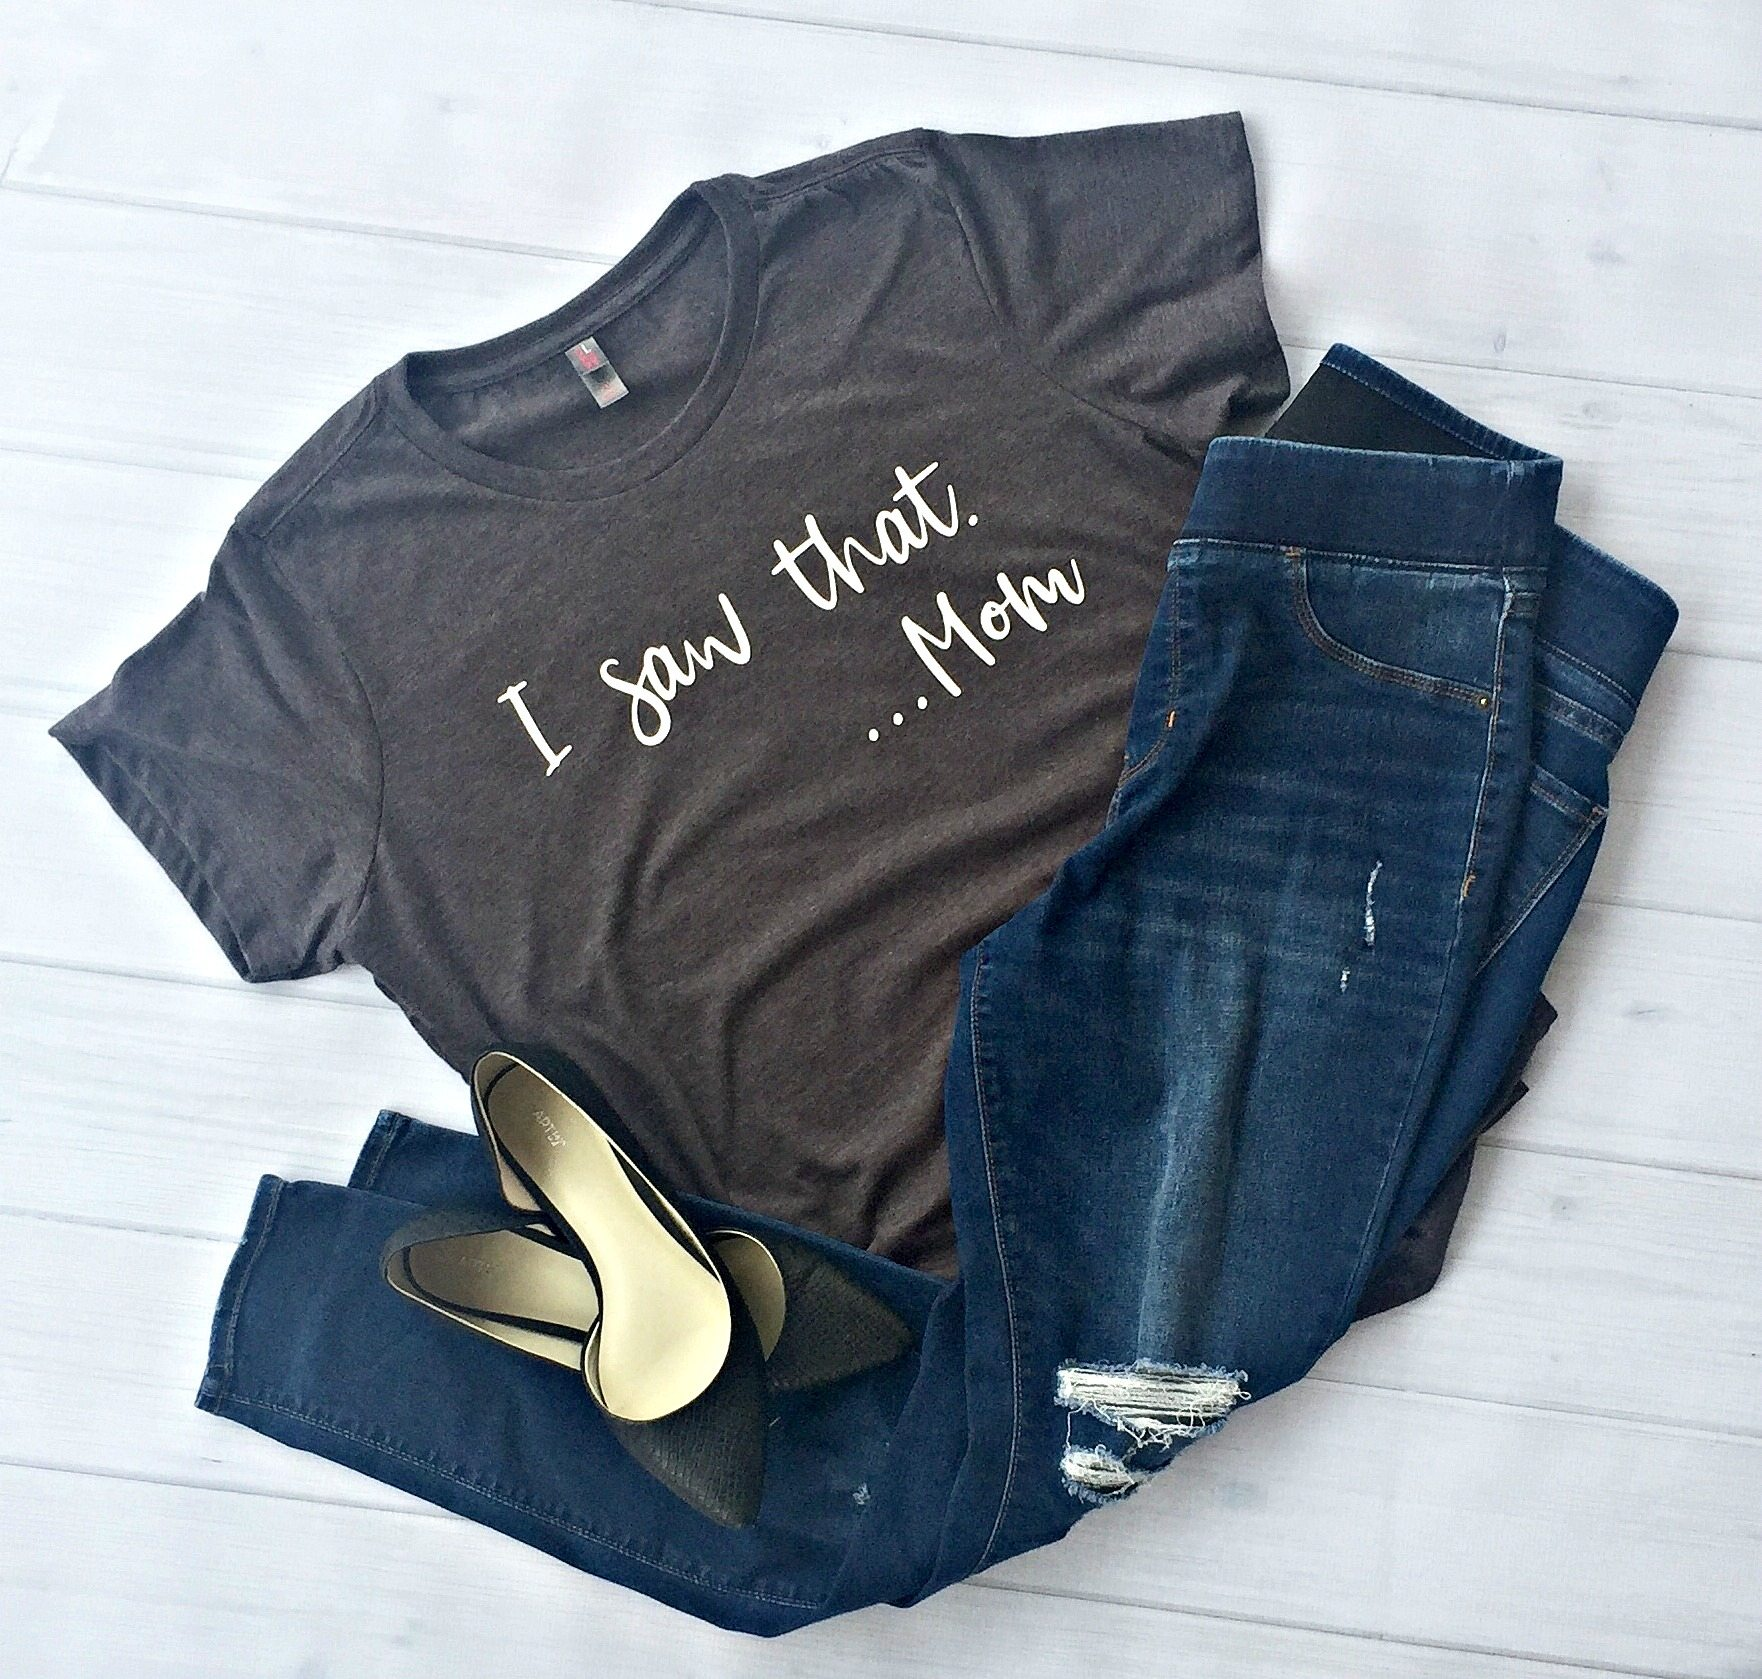 Mom attire - make your own Cricut design